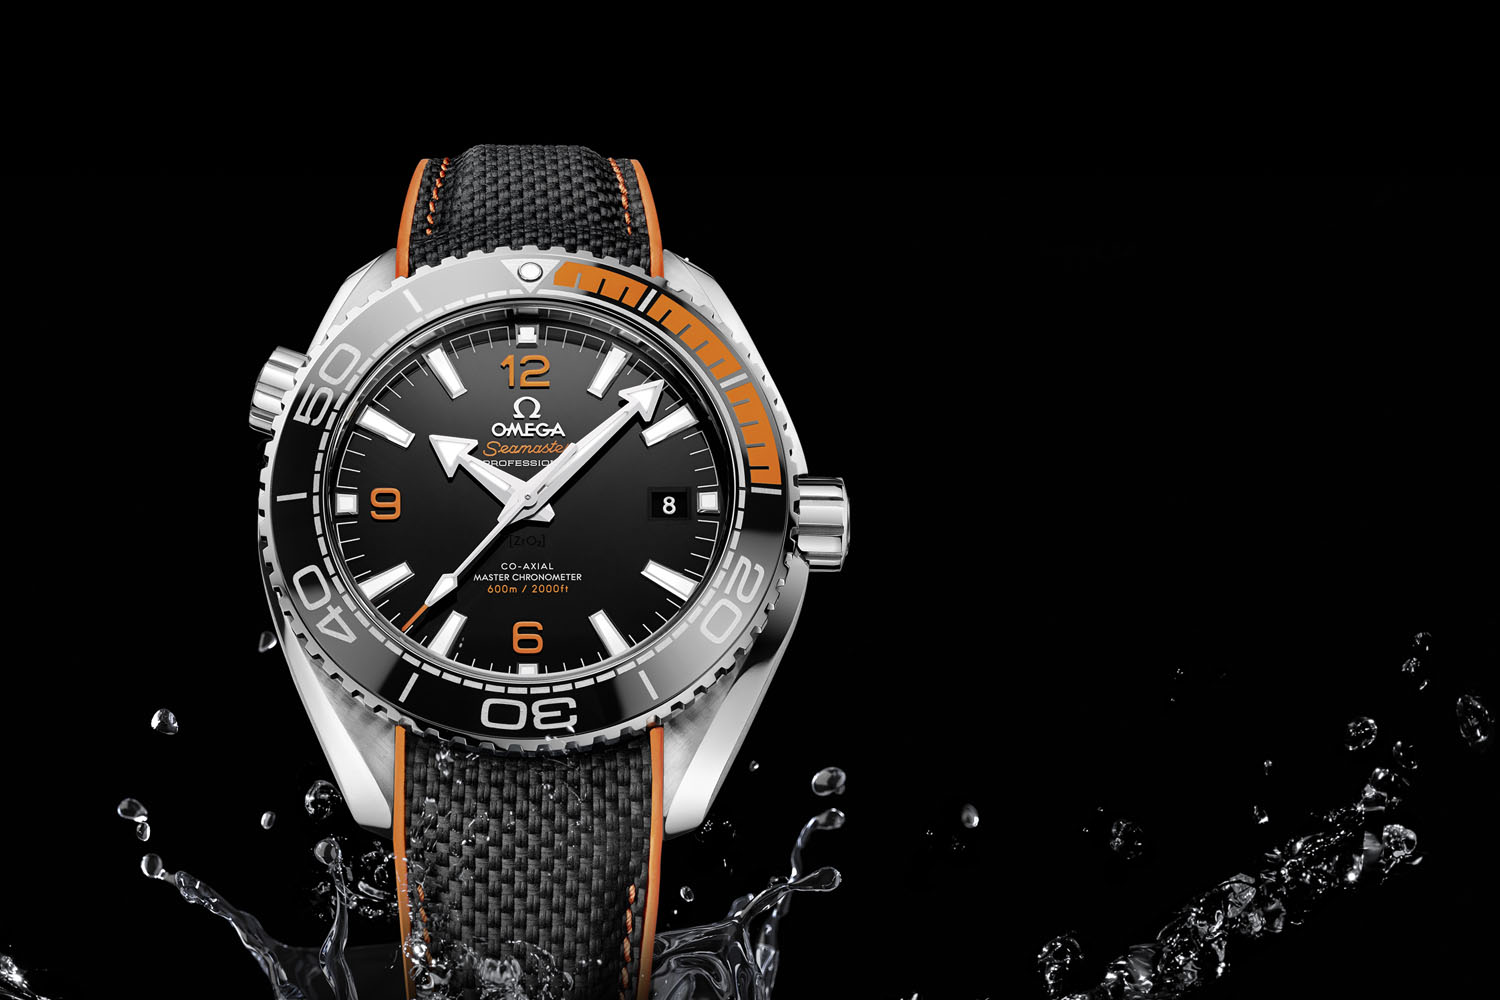 b358e7ef22211 Omega Seamaster Planet Ocean 43.5mm Automatic - Black and Orange - Master  Chronometer